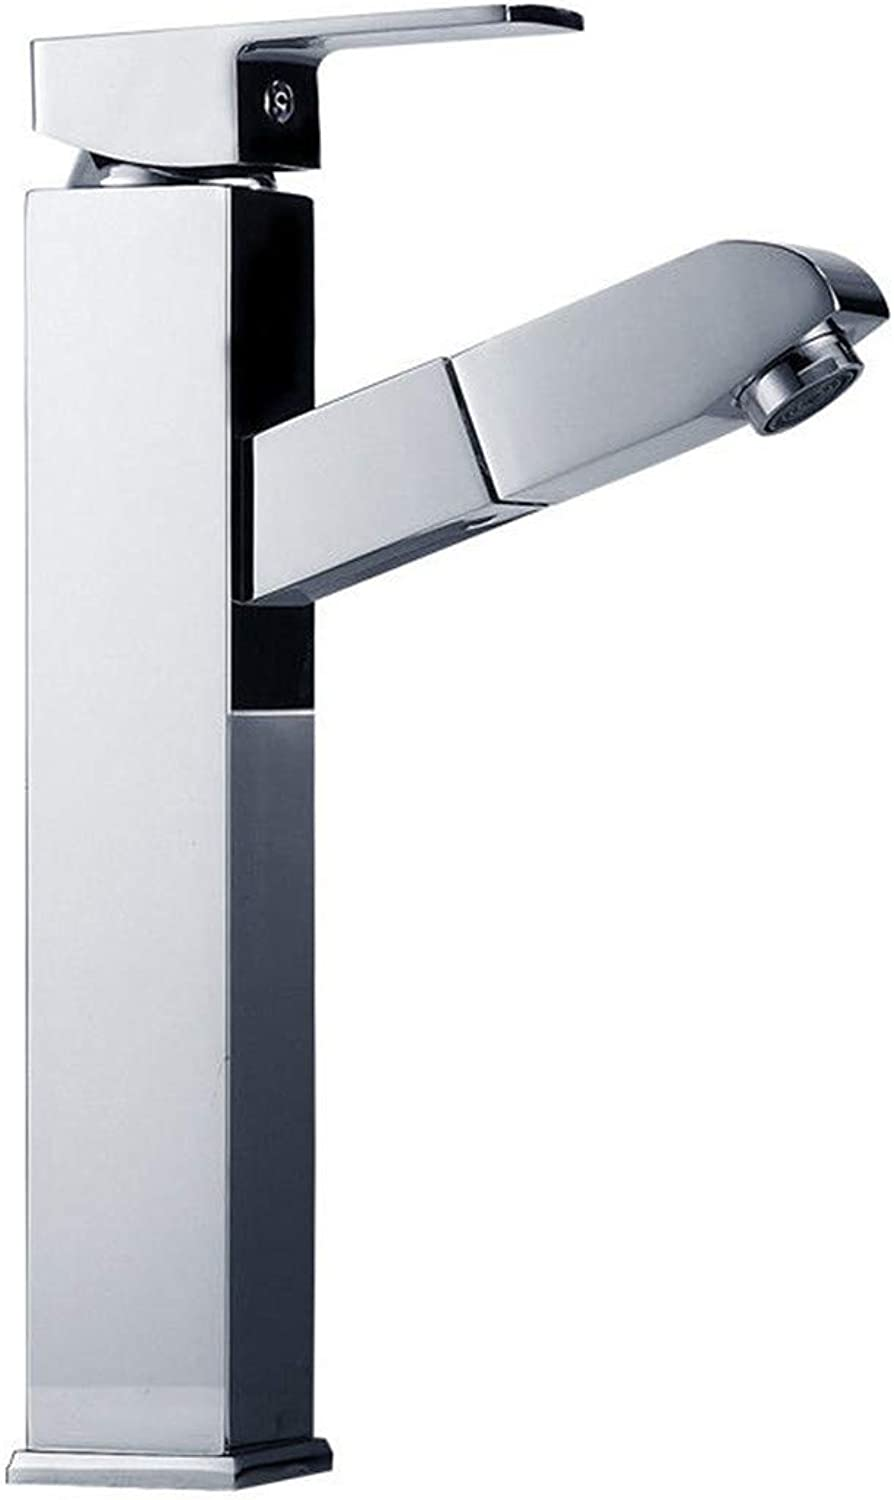 Mucert Tap,Full Copper,Cold and Hot Water,Bathroom Washbasin Faucet,A